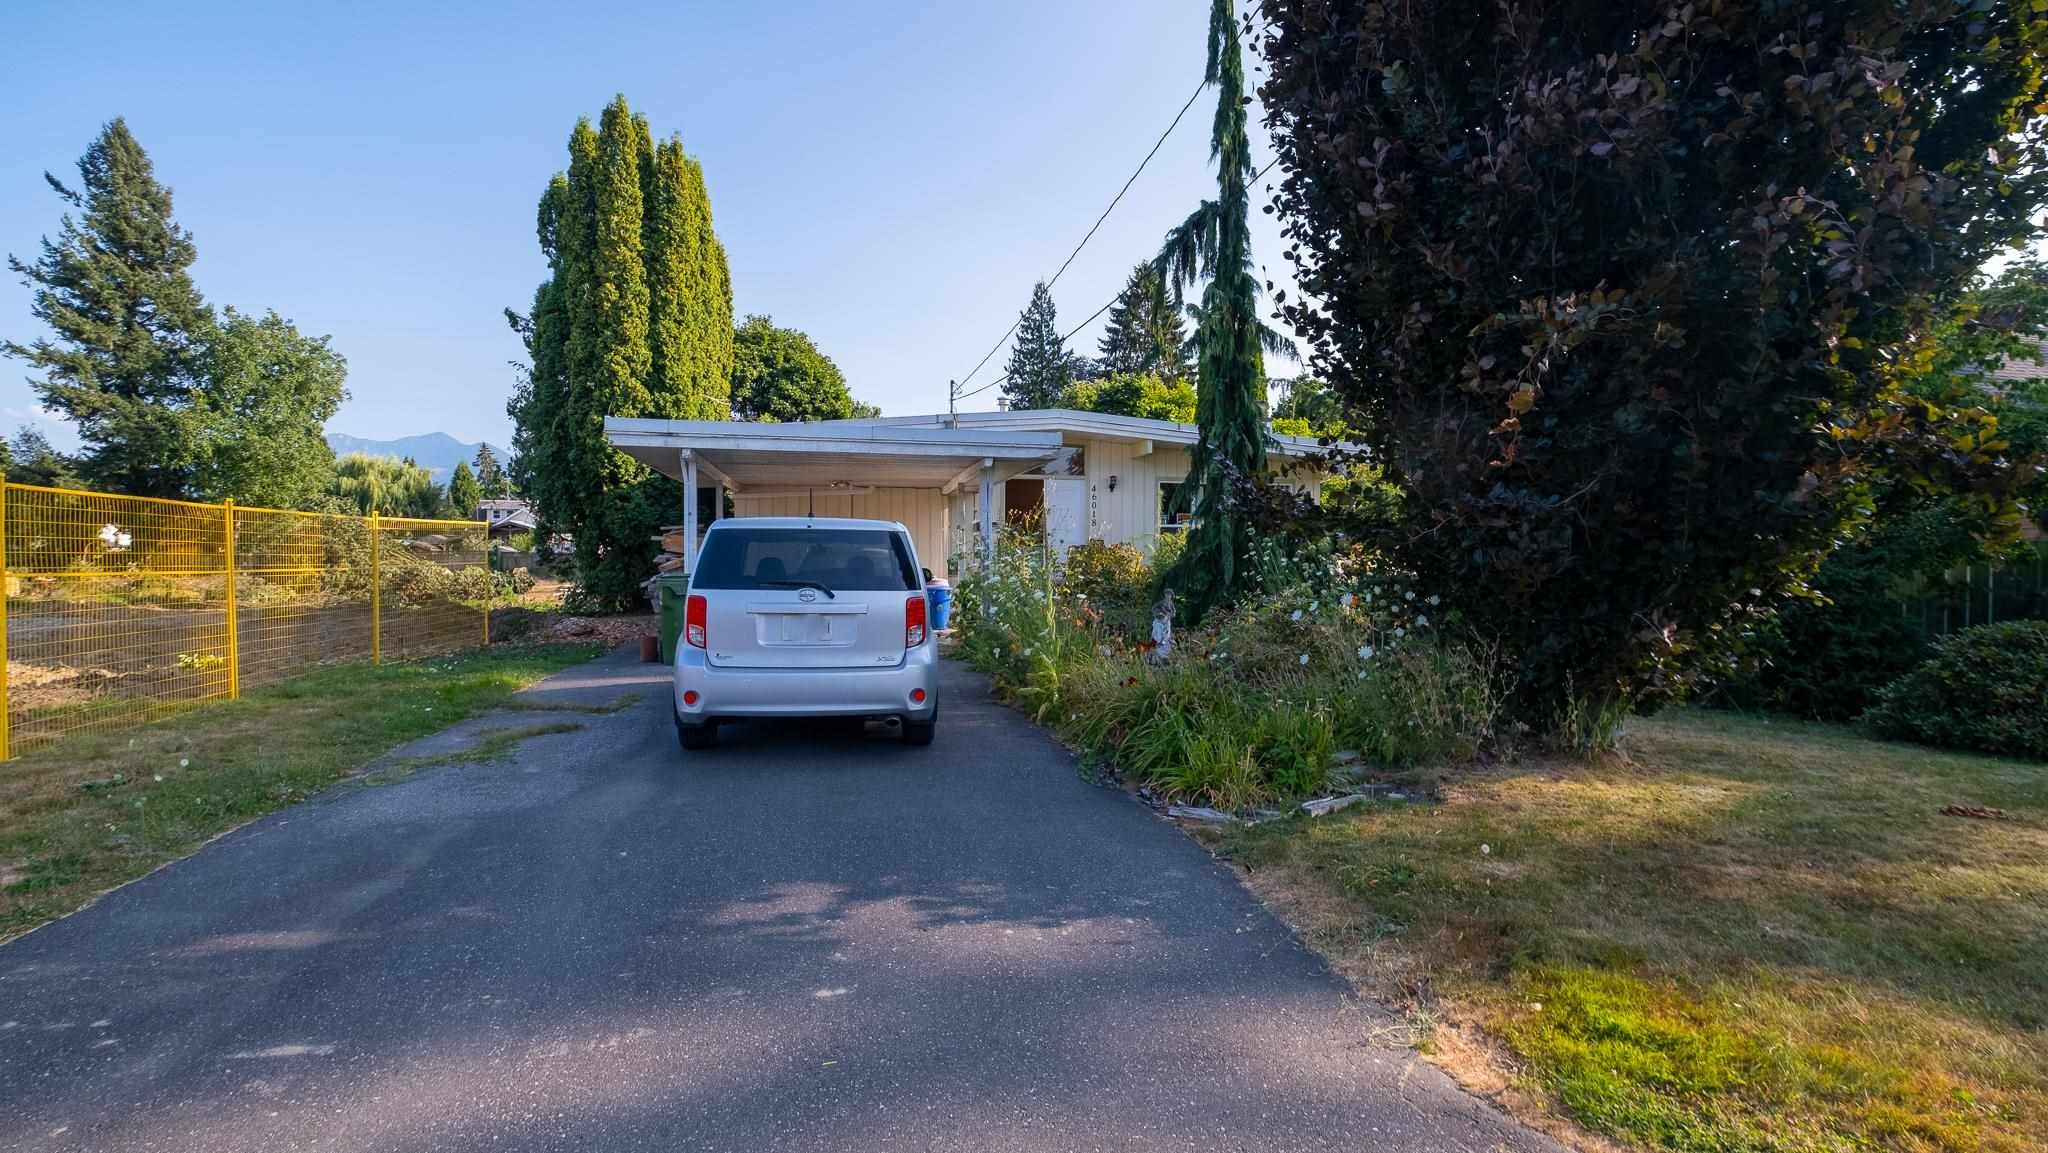 Main Photo: 46018 BONNY Avenue in Chilliwack: Chilliwack N Yale-Well House for sale : MLS®# R2605296